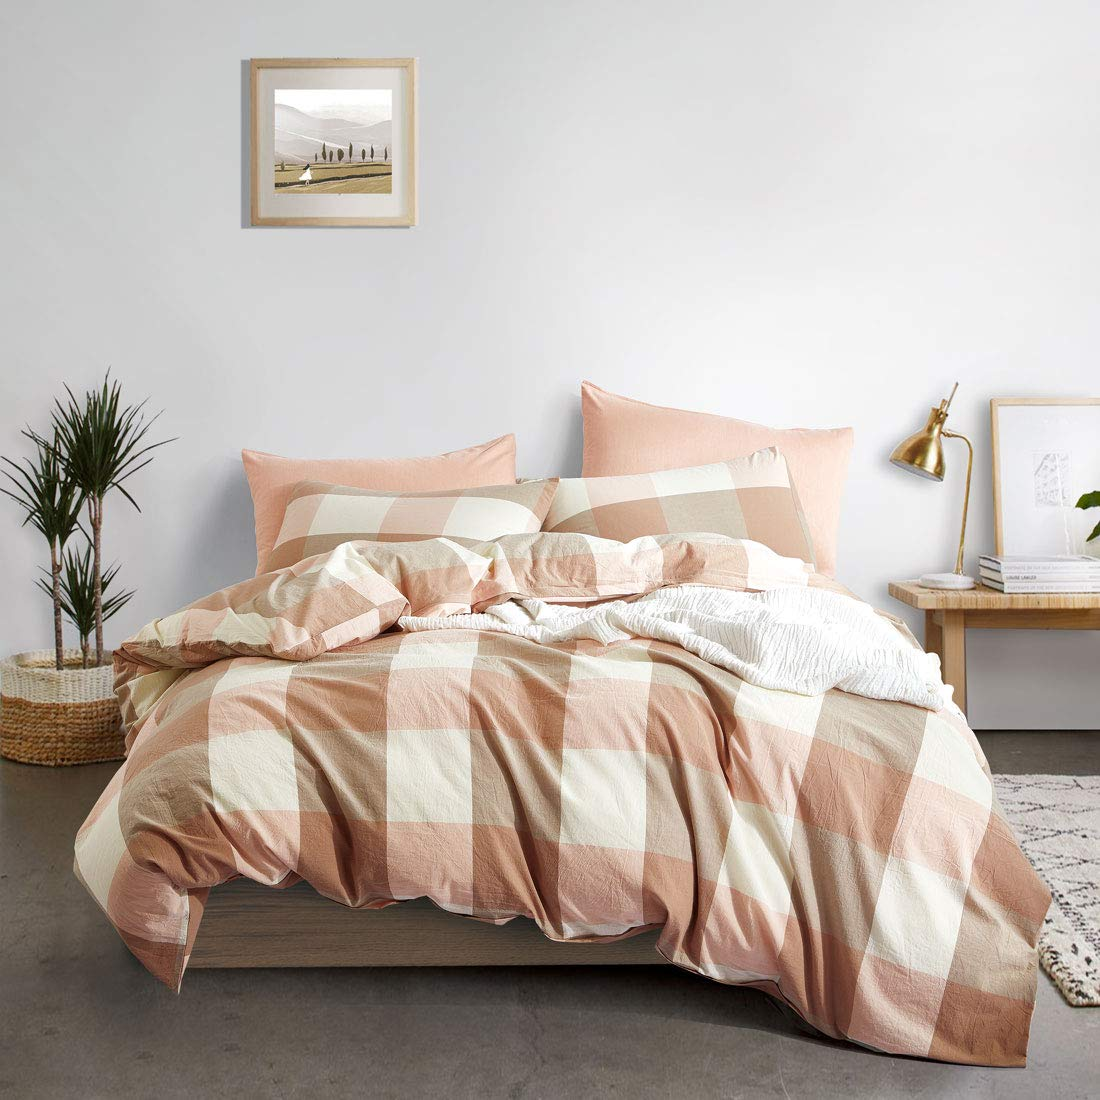 3-Piece Ultra Soft and Easy Care ATsense Duvet Cover Twin 100/% Washed Cotton Bedding Duvet Cover Set Simple Style Farmhouse Bedding Set White 7006-4